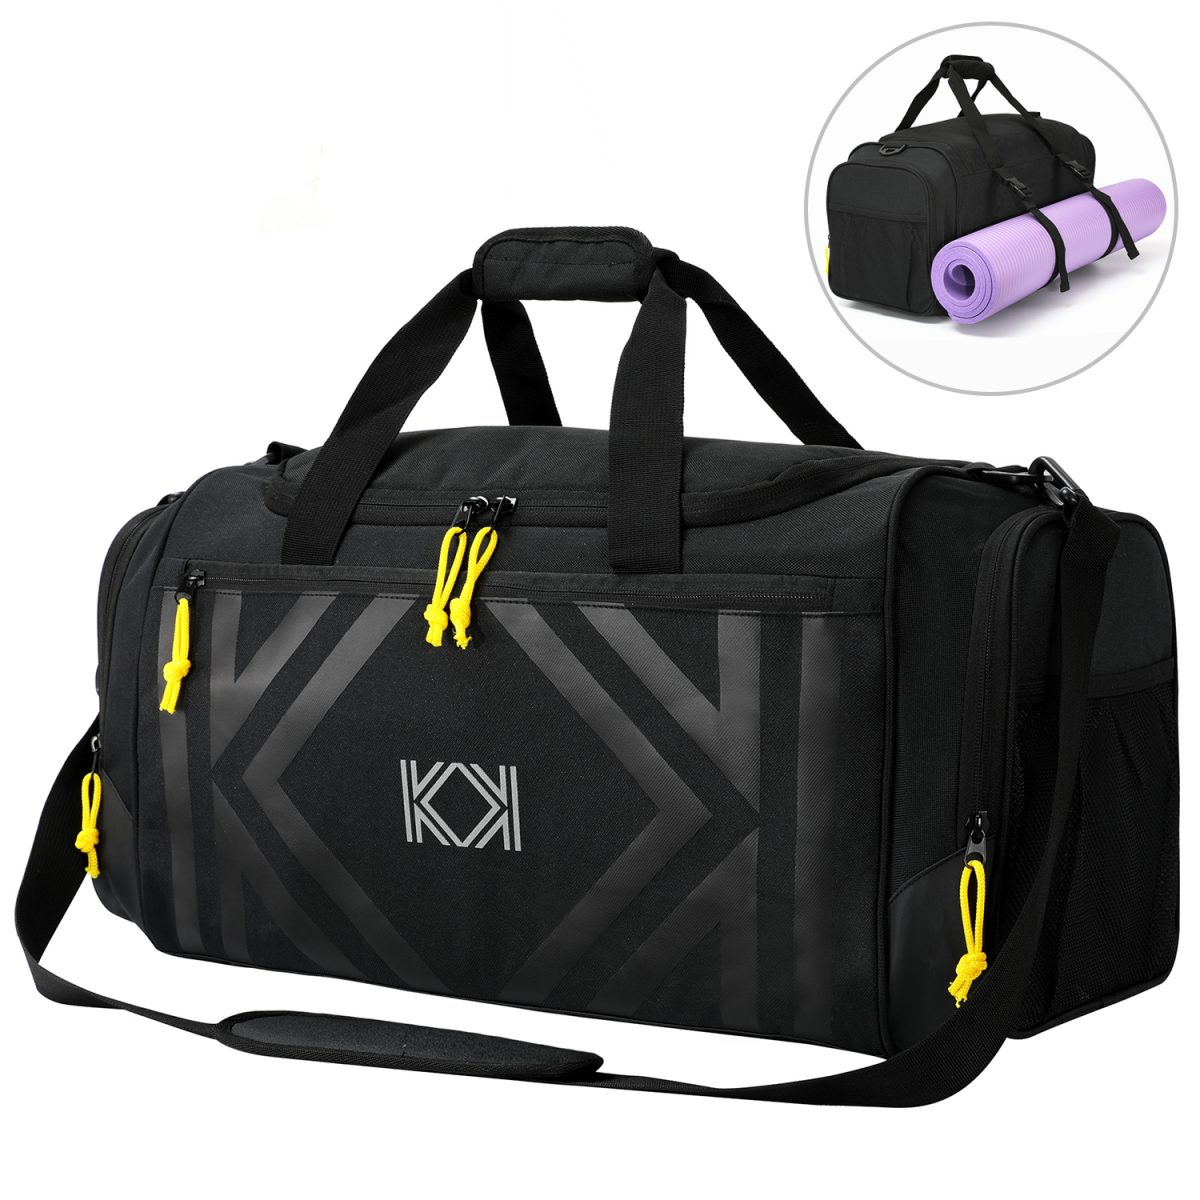 9c213f2c99 Gym bag Sports duffel bag, Fitness bags, MMA bags, Yoga bags - HKMT